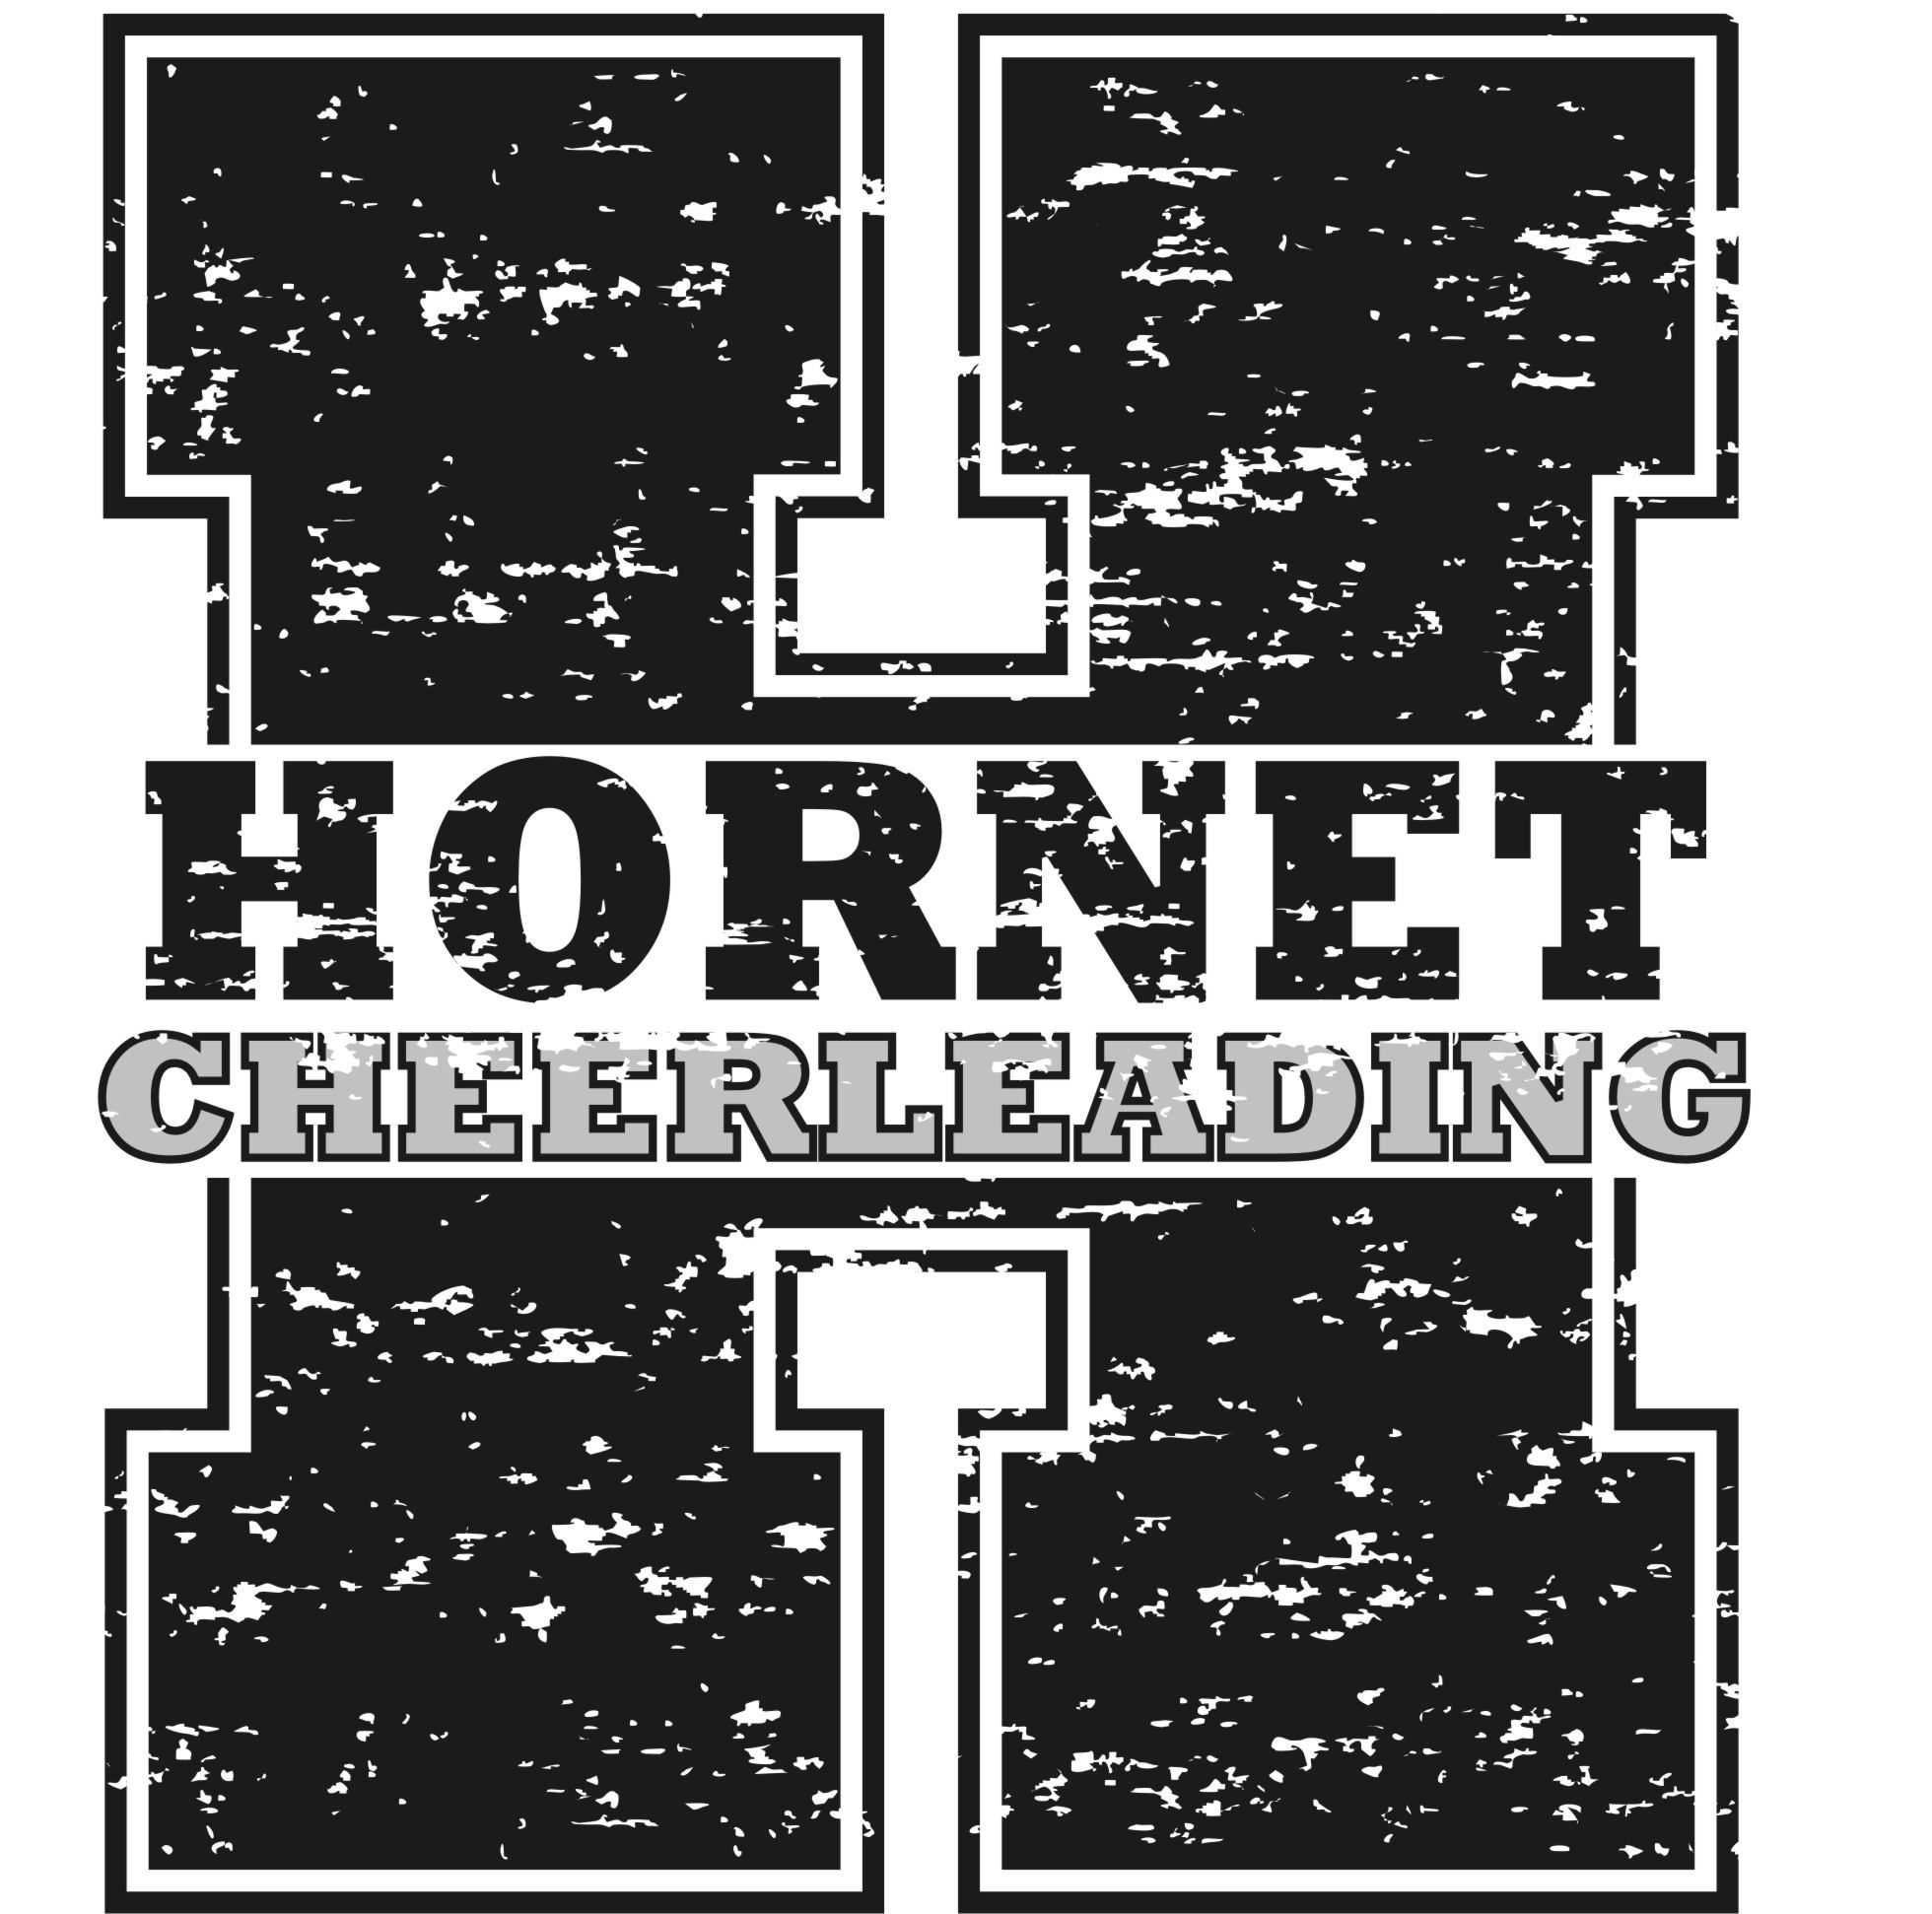 Cheer Shirt Design Ideas design custom cheerleading t shirts online by spiritwear Cheerleading T Shirts Churches School Spirit Sports Family